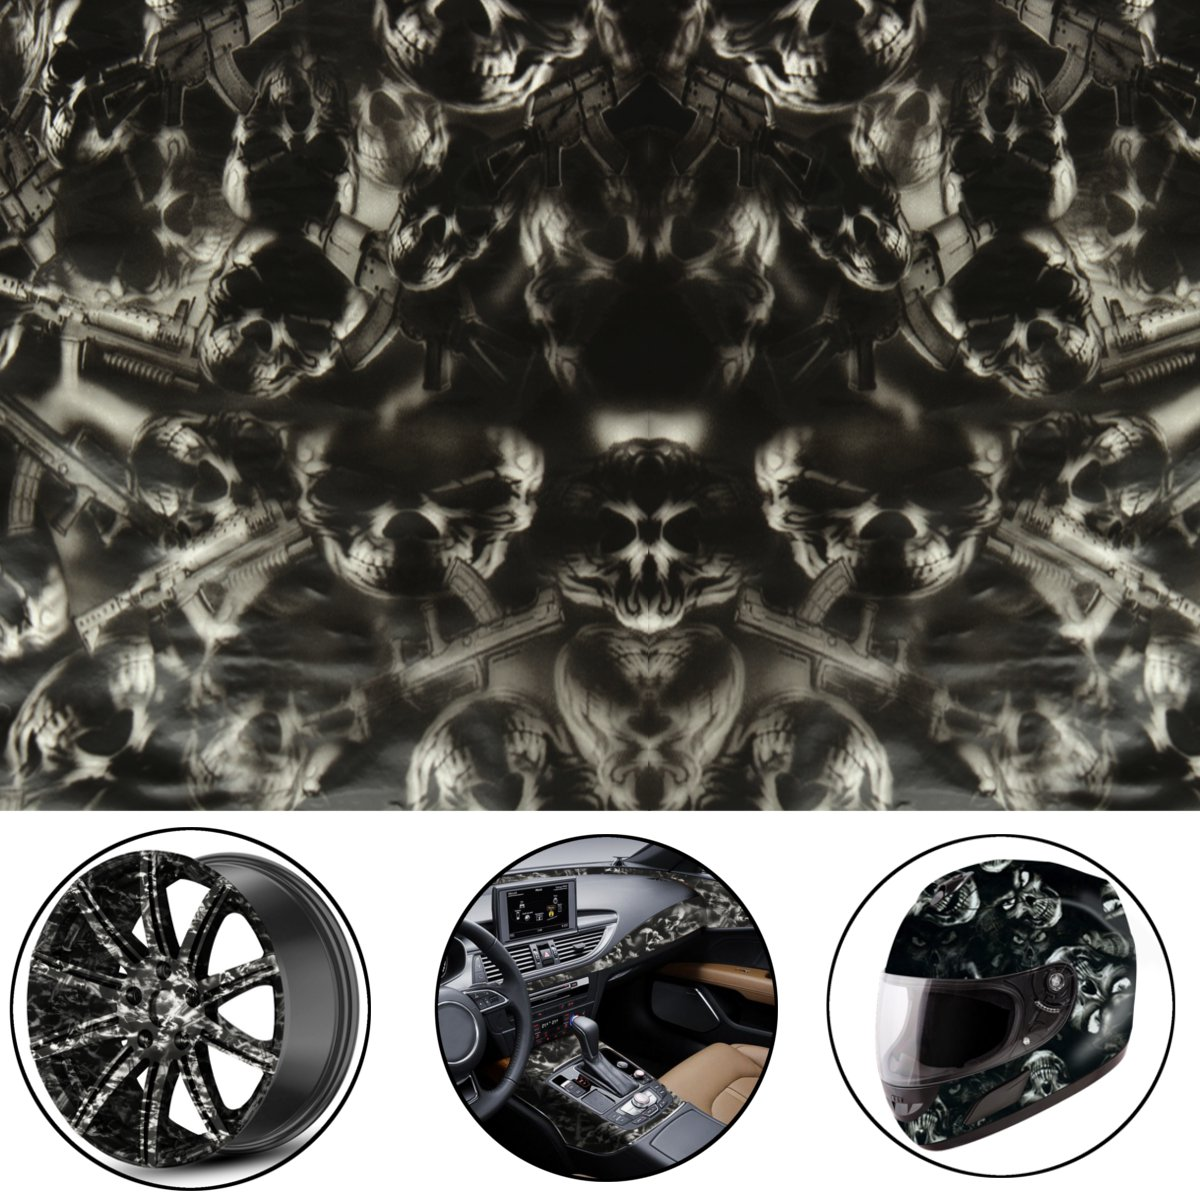 50x100cm Black PVA Hydrographic Film Water Transfer Printing Film Hydro Dip Flame Style Decals Stickers